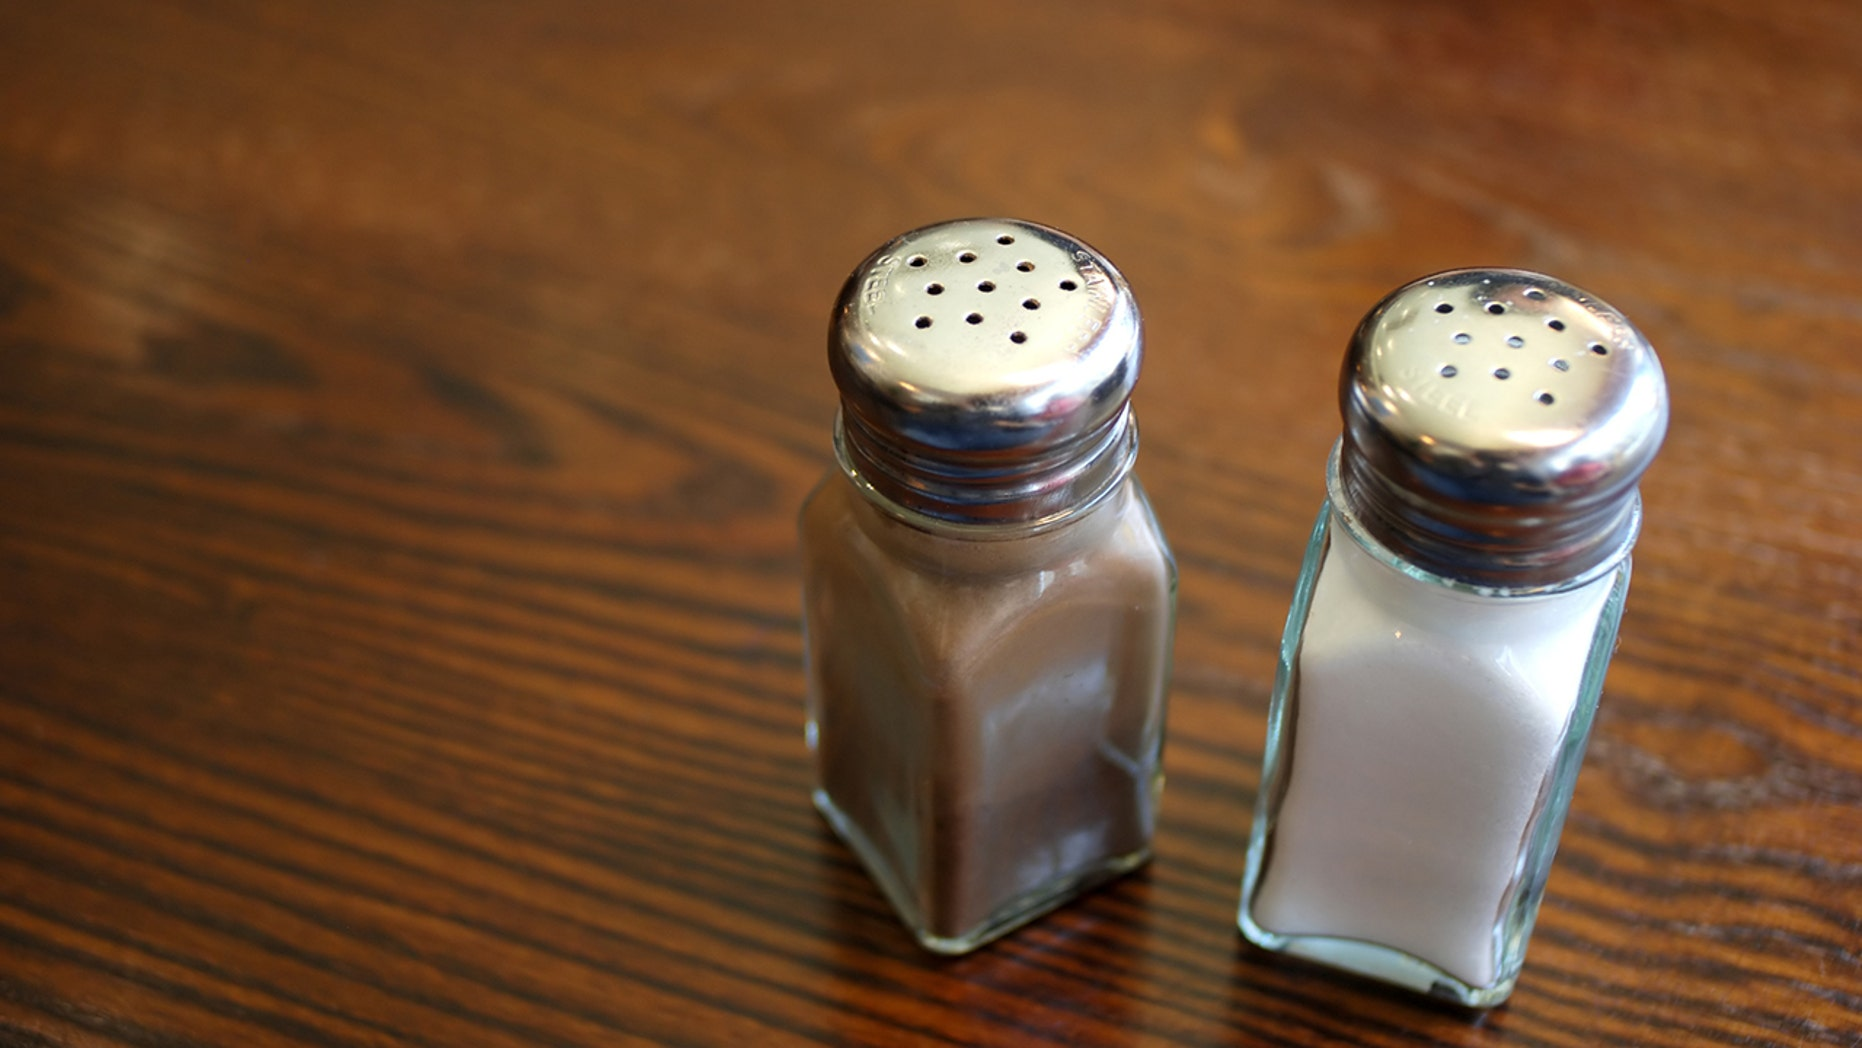 """Pepper shakers are """"rarely properly emptied and sanitized,"""" saidJonas Sickler,director of operations at ConsumerSafety.org."""